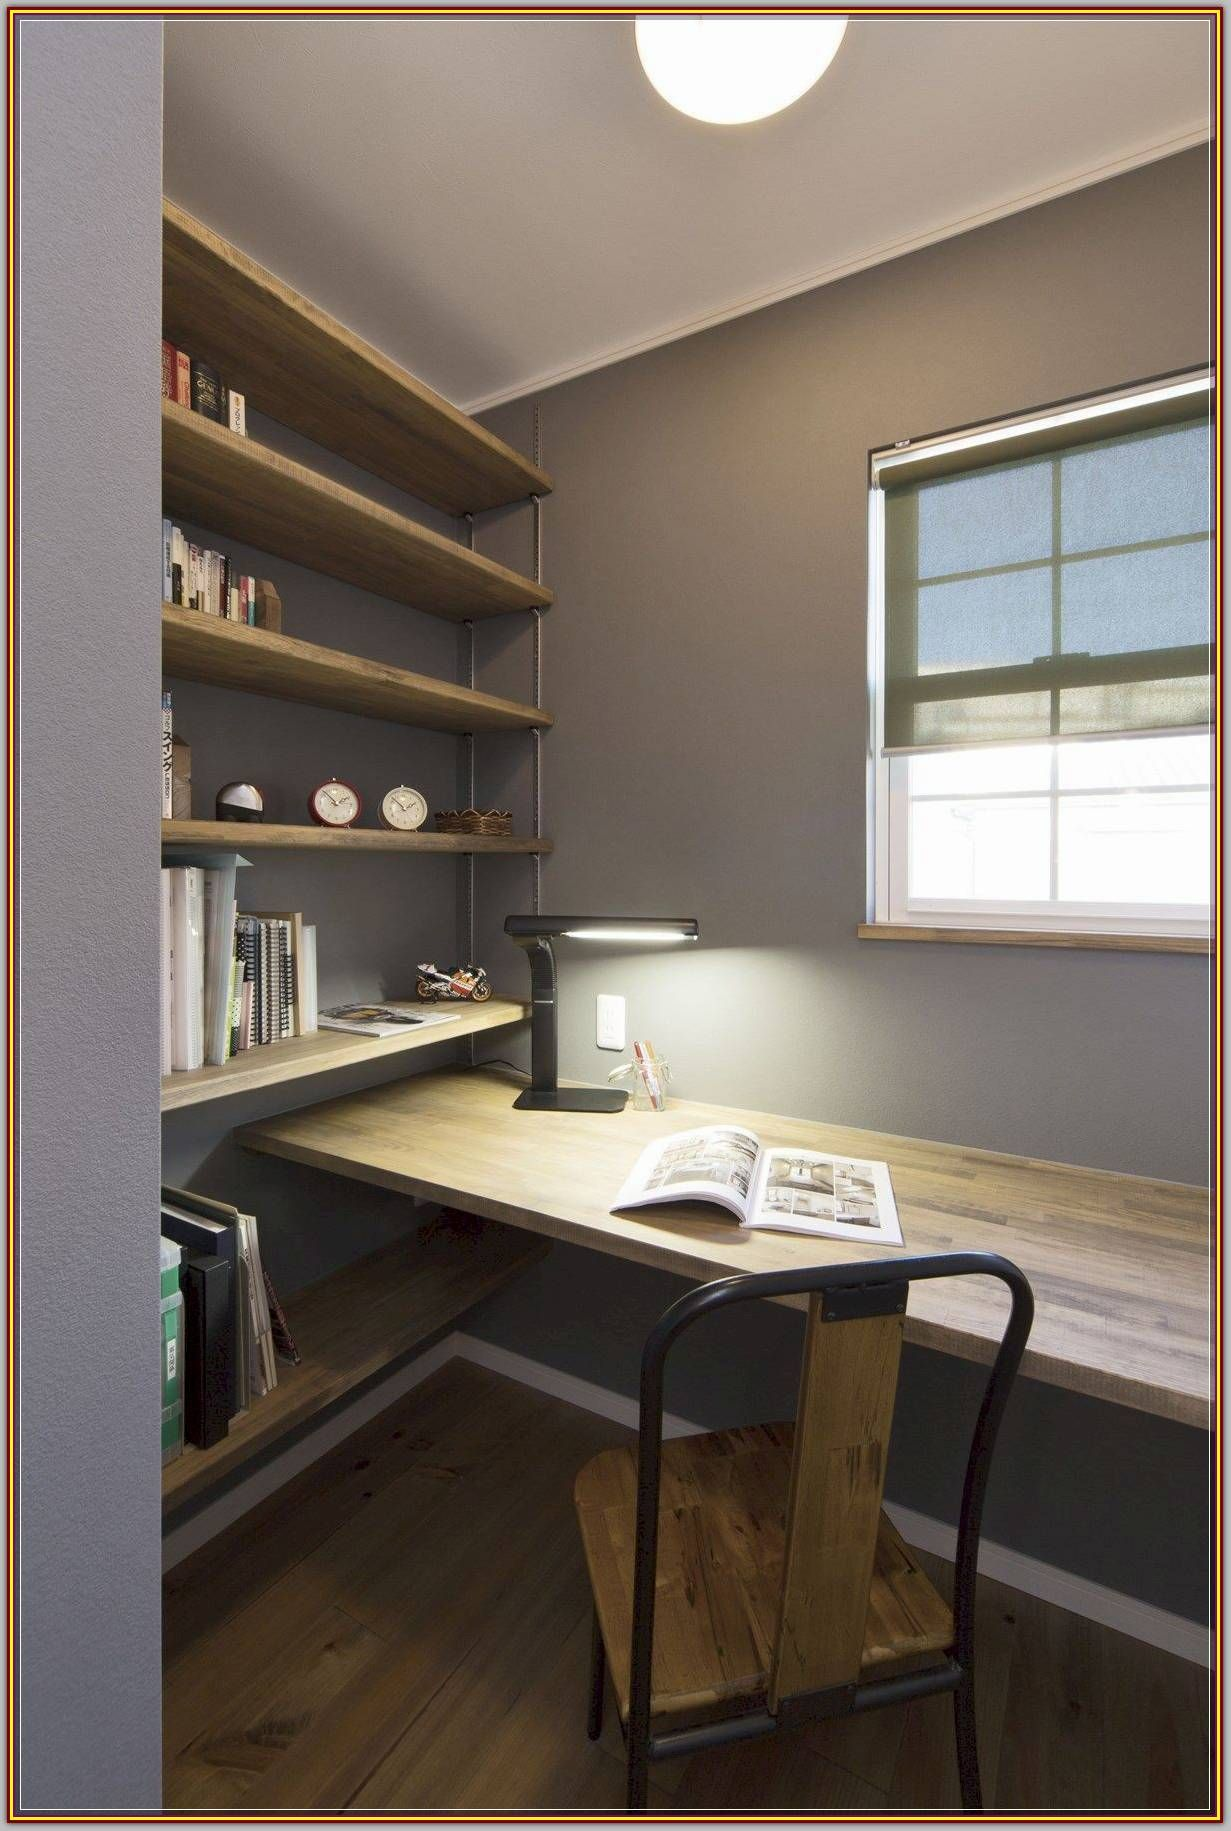 Furnish Your Home Office Decor With These Tips And Tricks Modern Interior Design Small Room Design Home Office Design Home